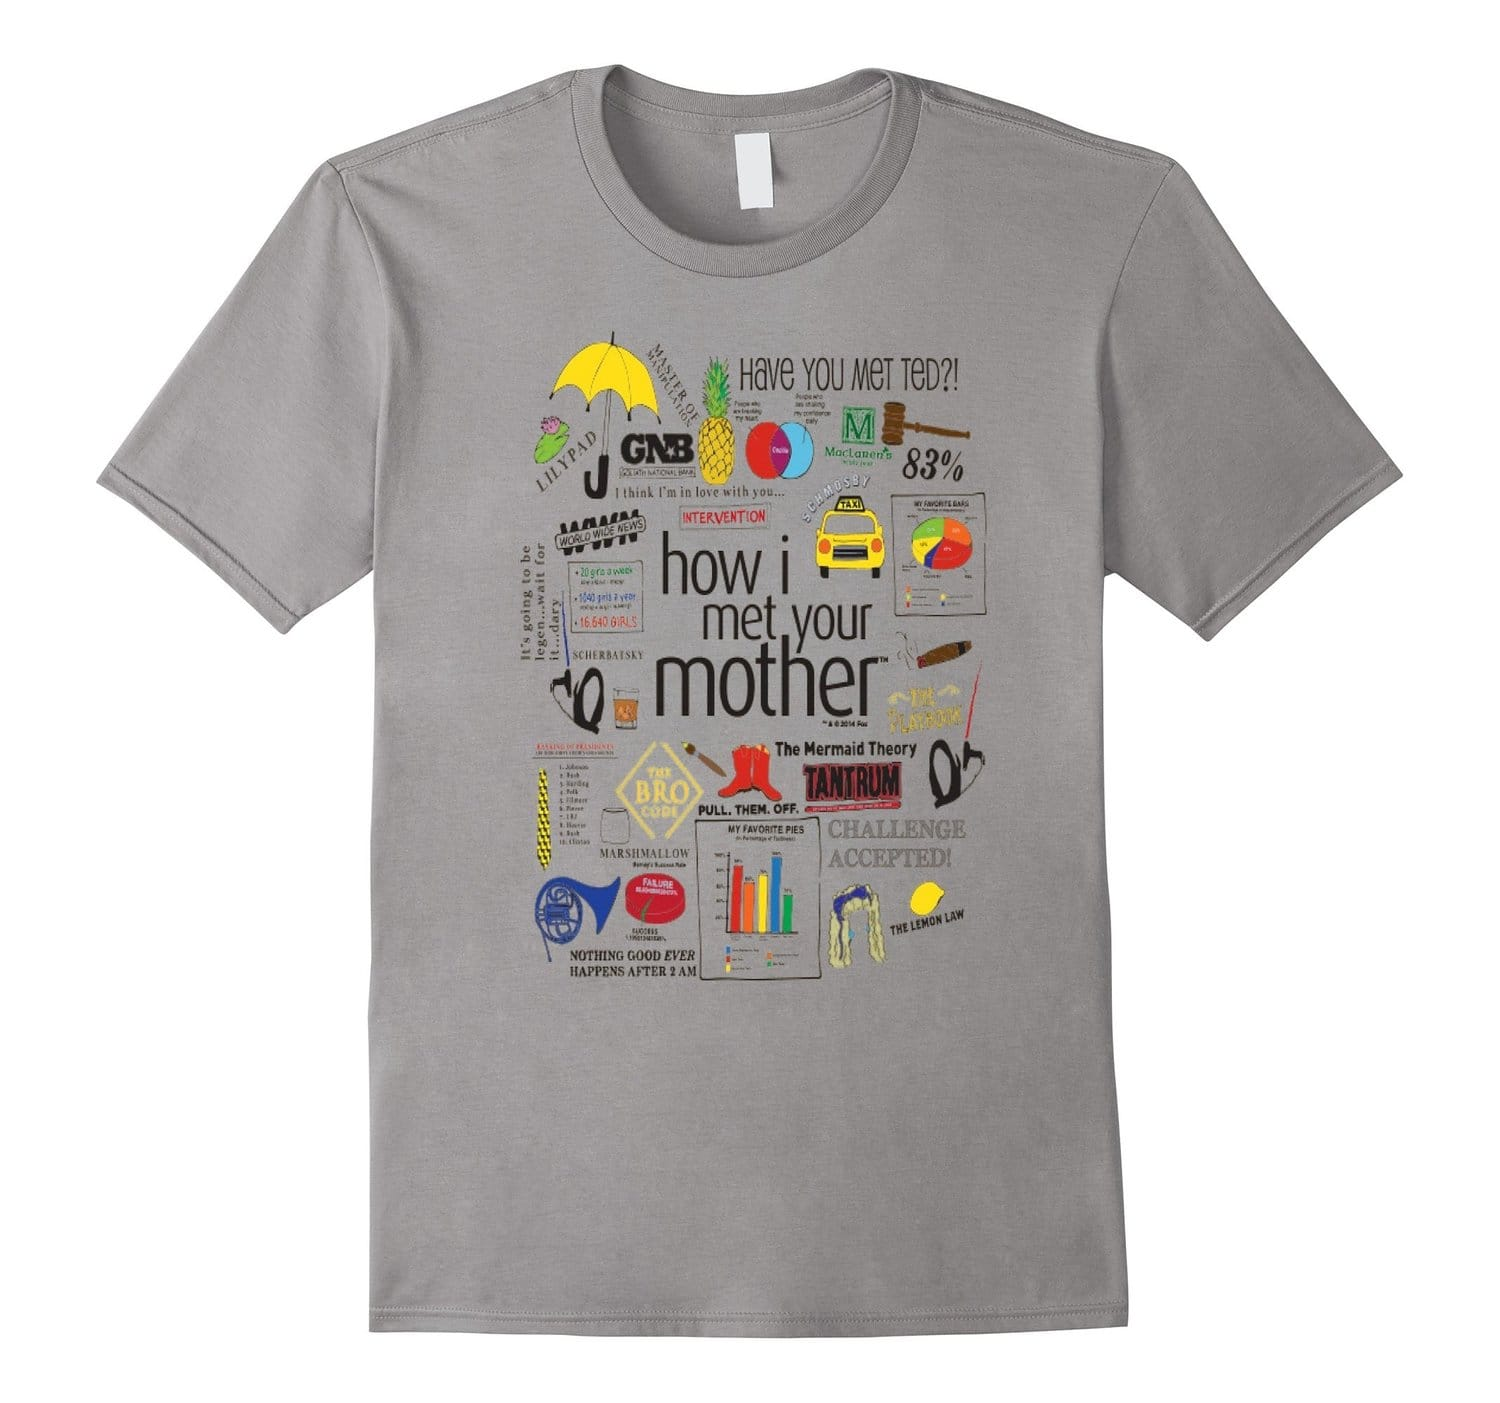 how-i-met-your-mother-unisex-quote-mashup-shirt-summer-2016-79274